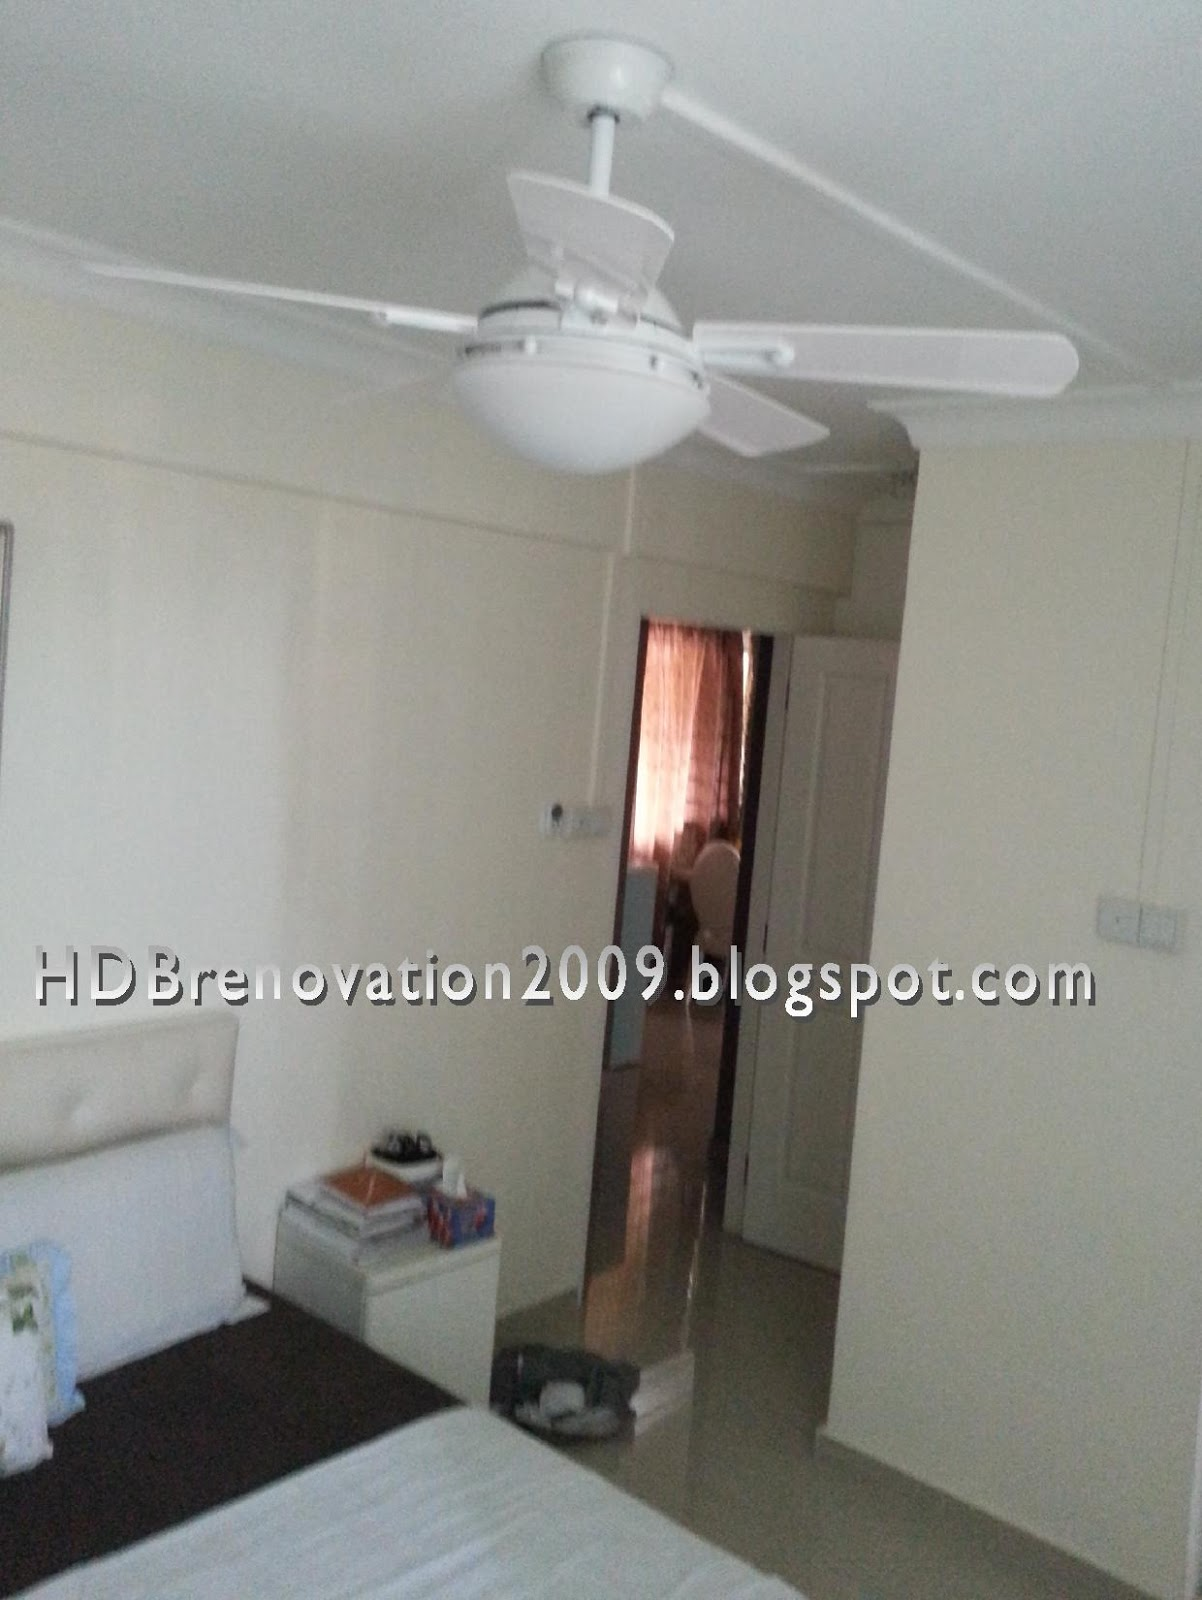 Our Hdb Flat Renovation In 2009 May 2013